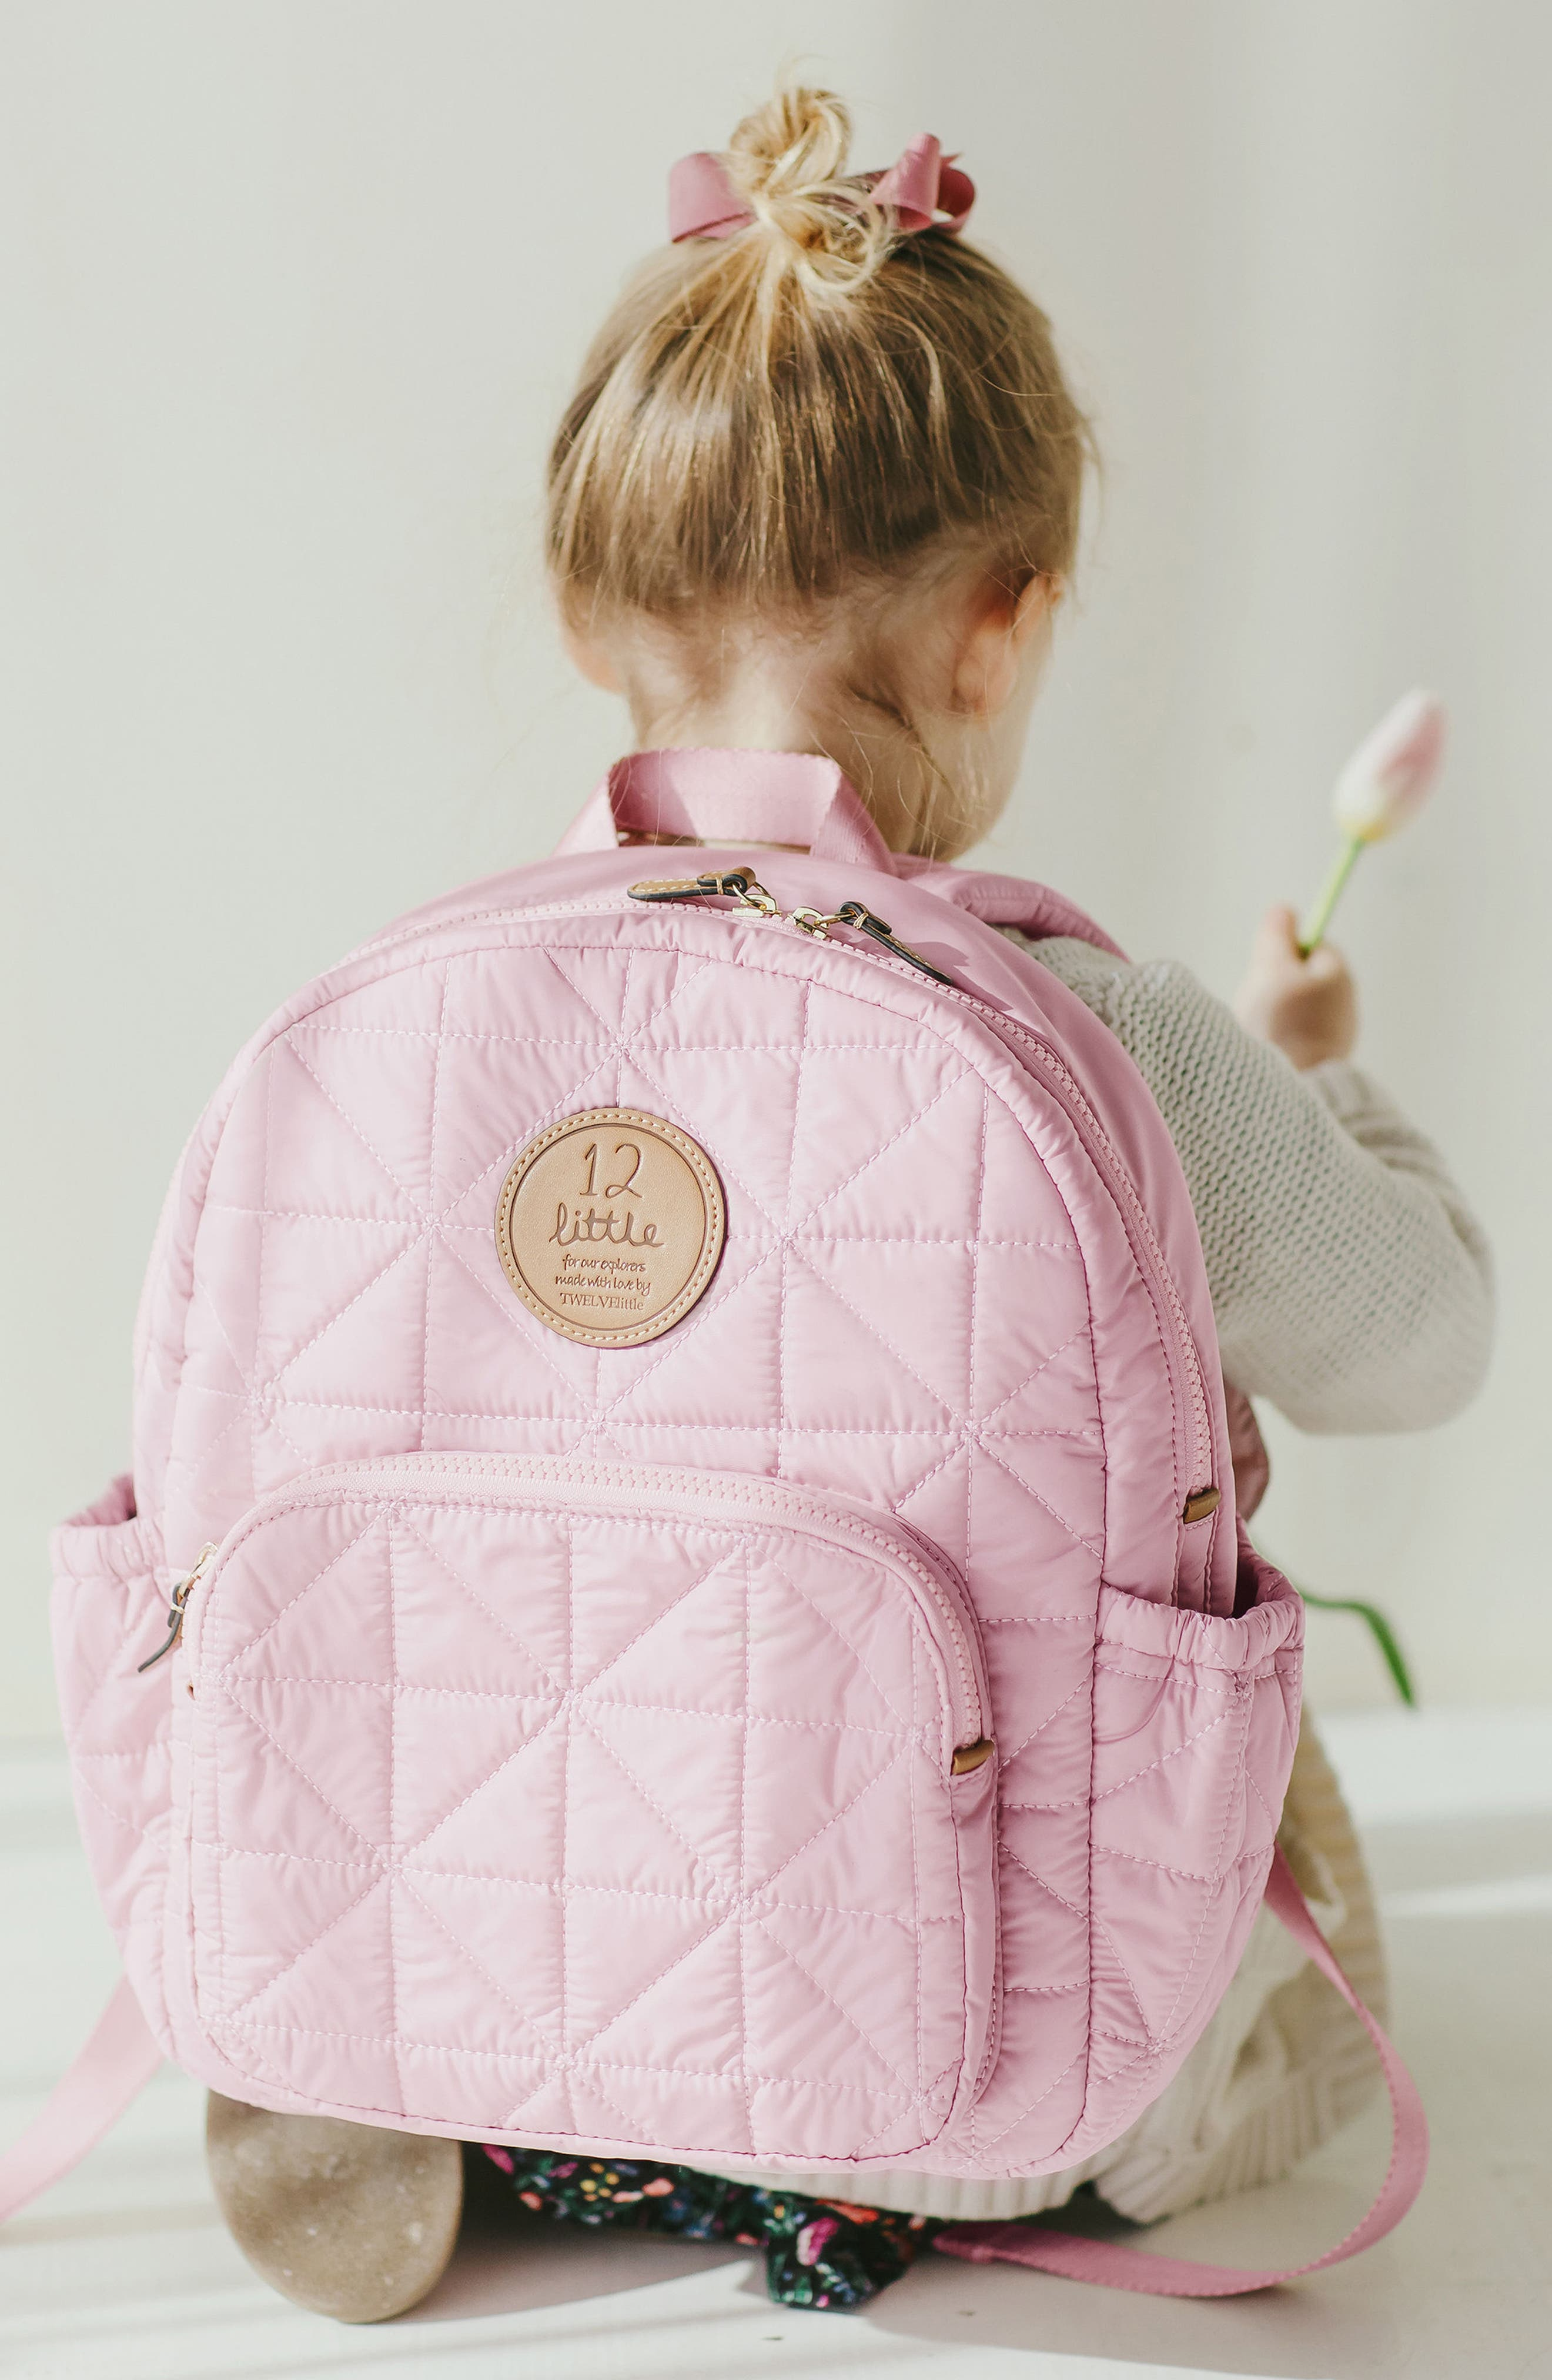 'Companion Backpack' Quilted Nylon Diaper Bag,                             Alternate thumbnail 6, color,